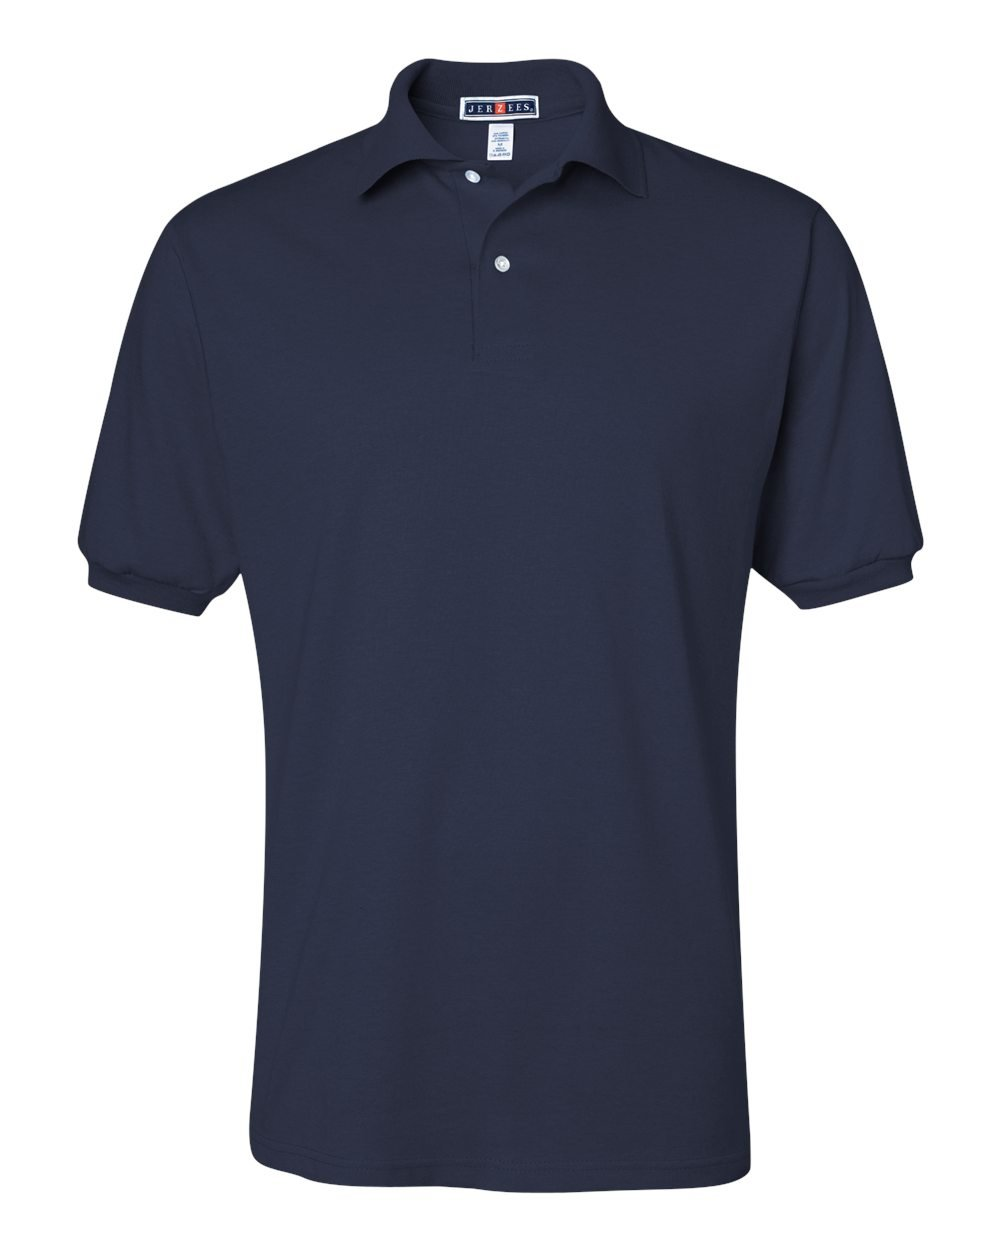 Jerzees Mens Standard Spot Shield Short Sleeve Polo Sport Shirt 437